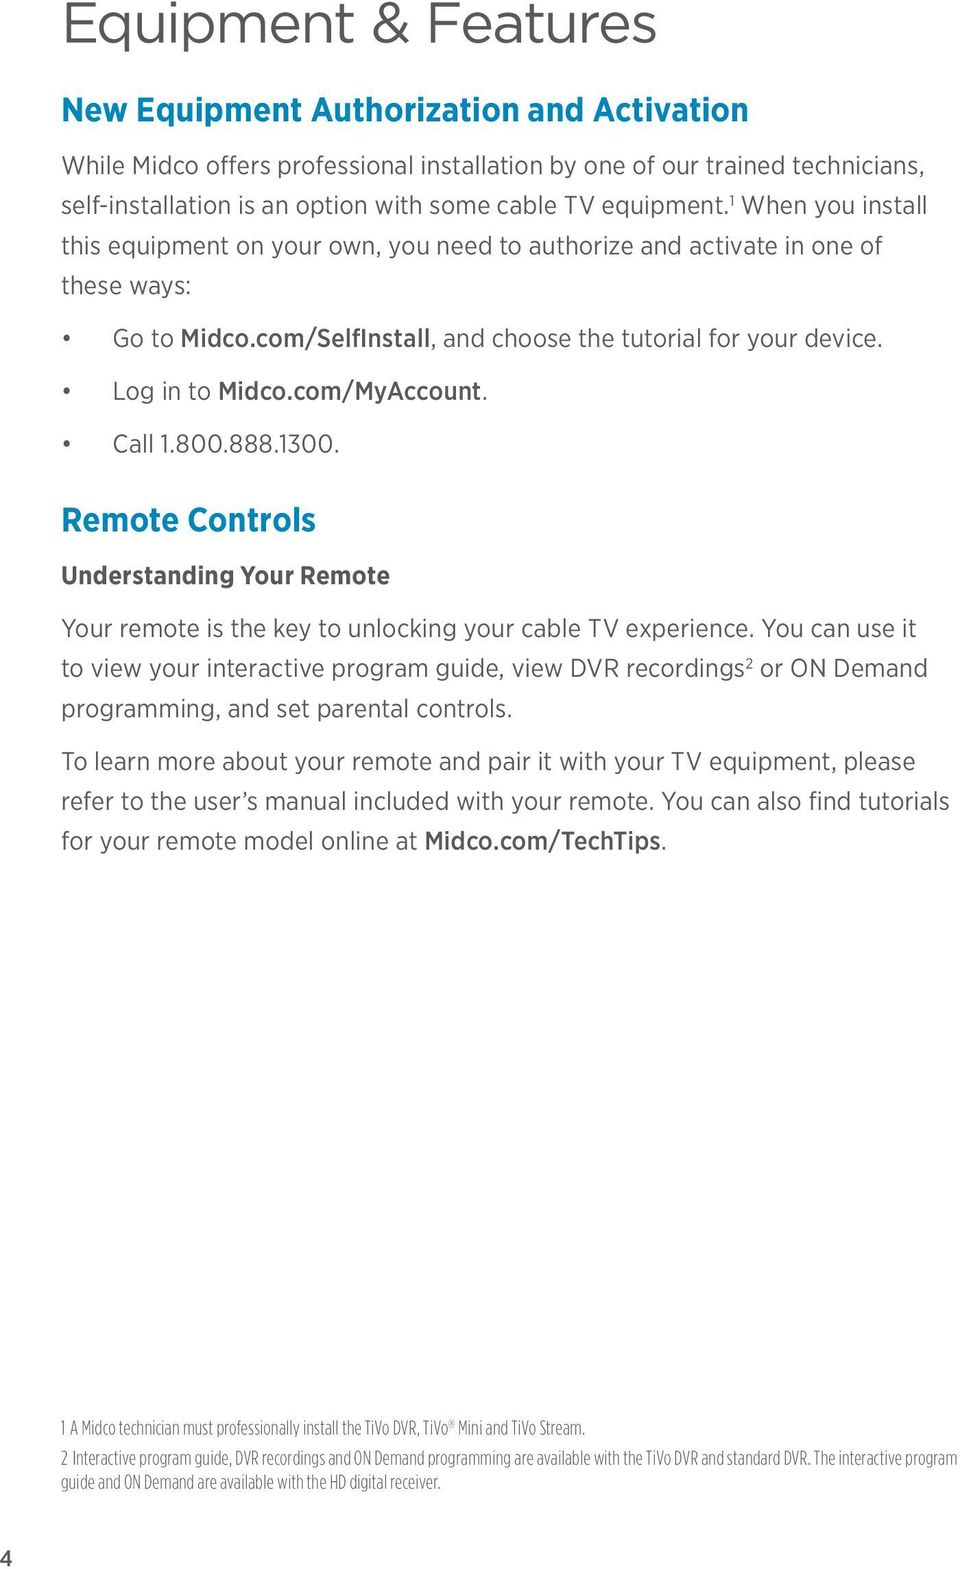 How To Pair Tivo Remote